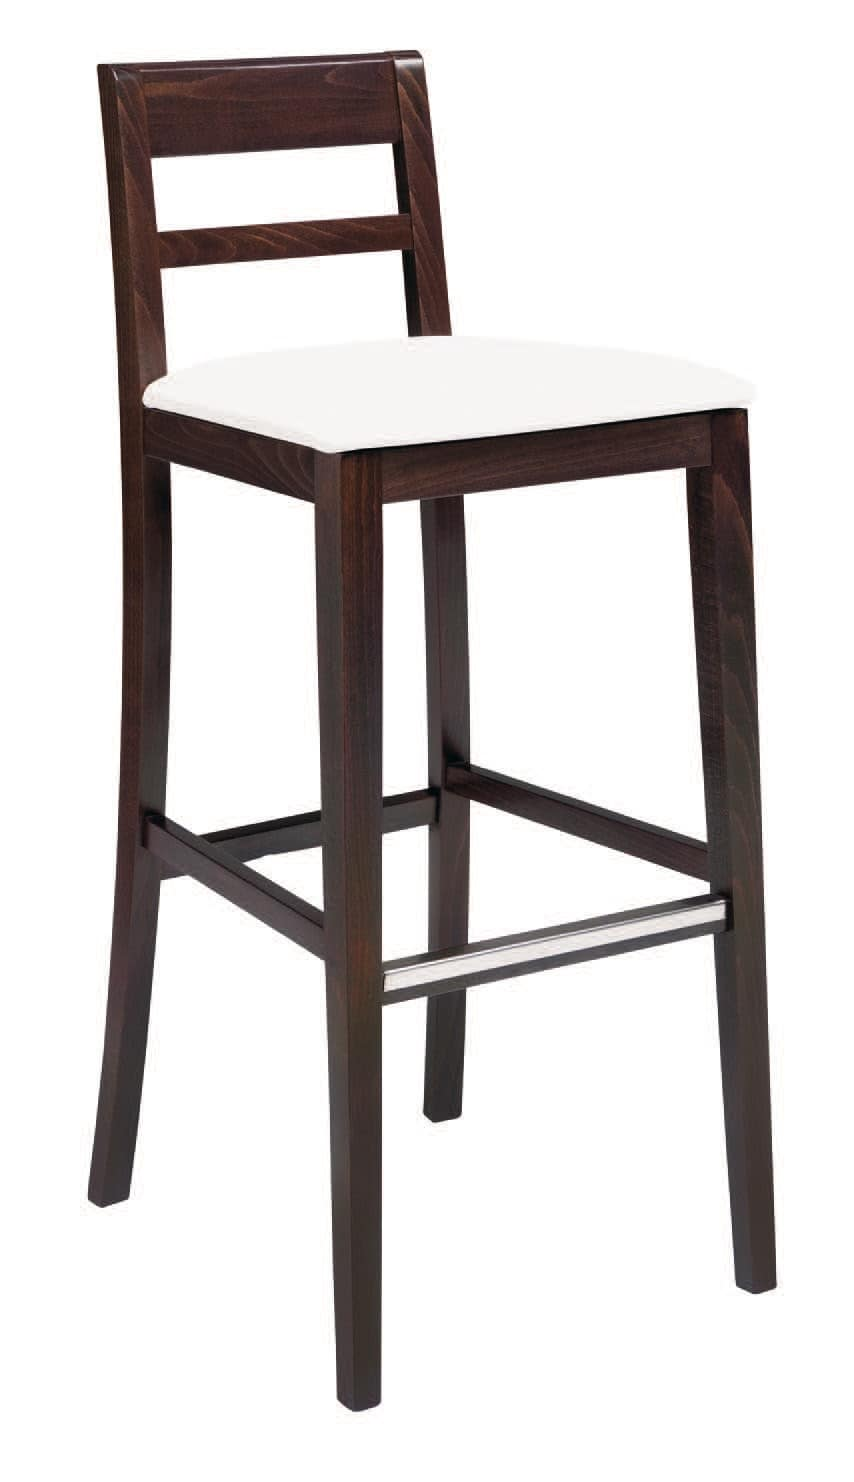 SG 490 / EI, Painted wooden stool, seat covered in leather